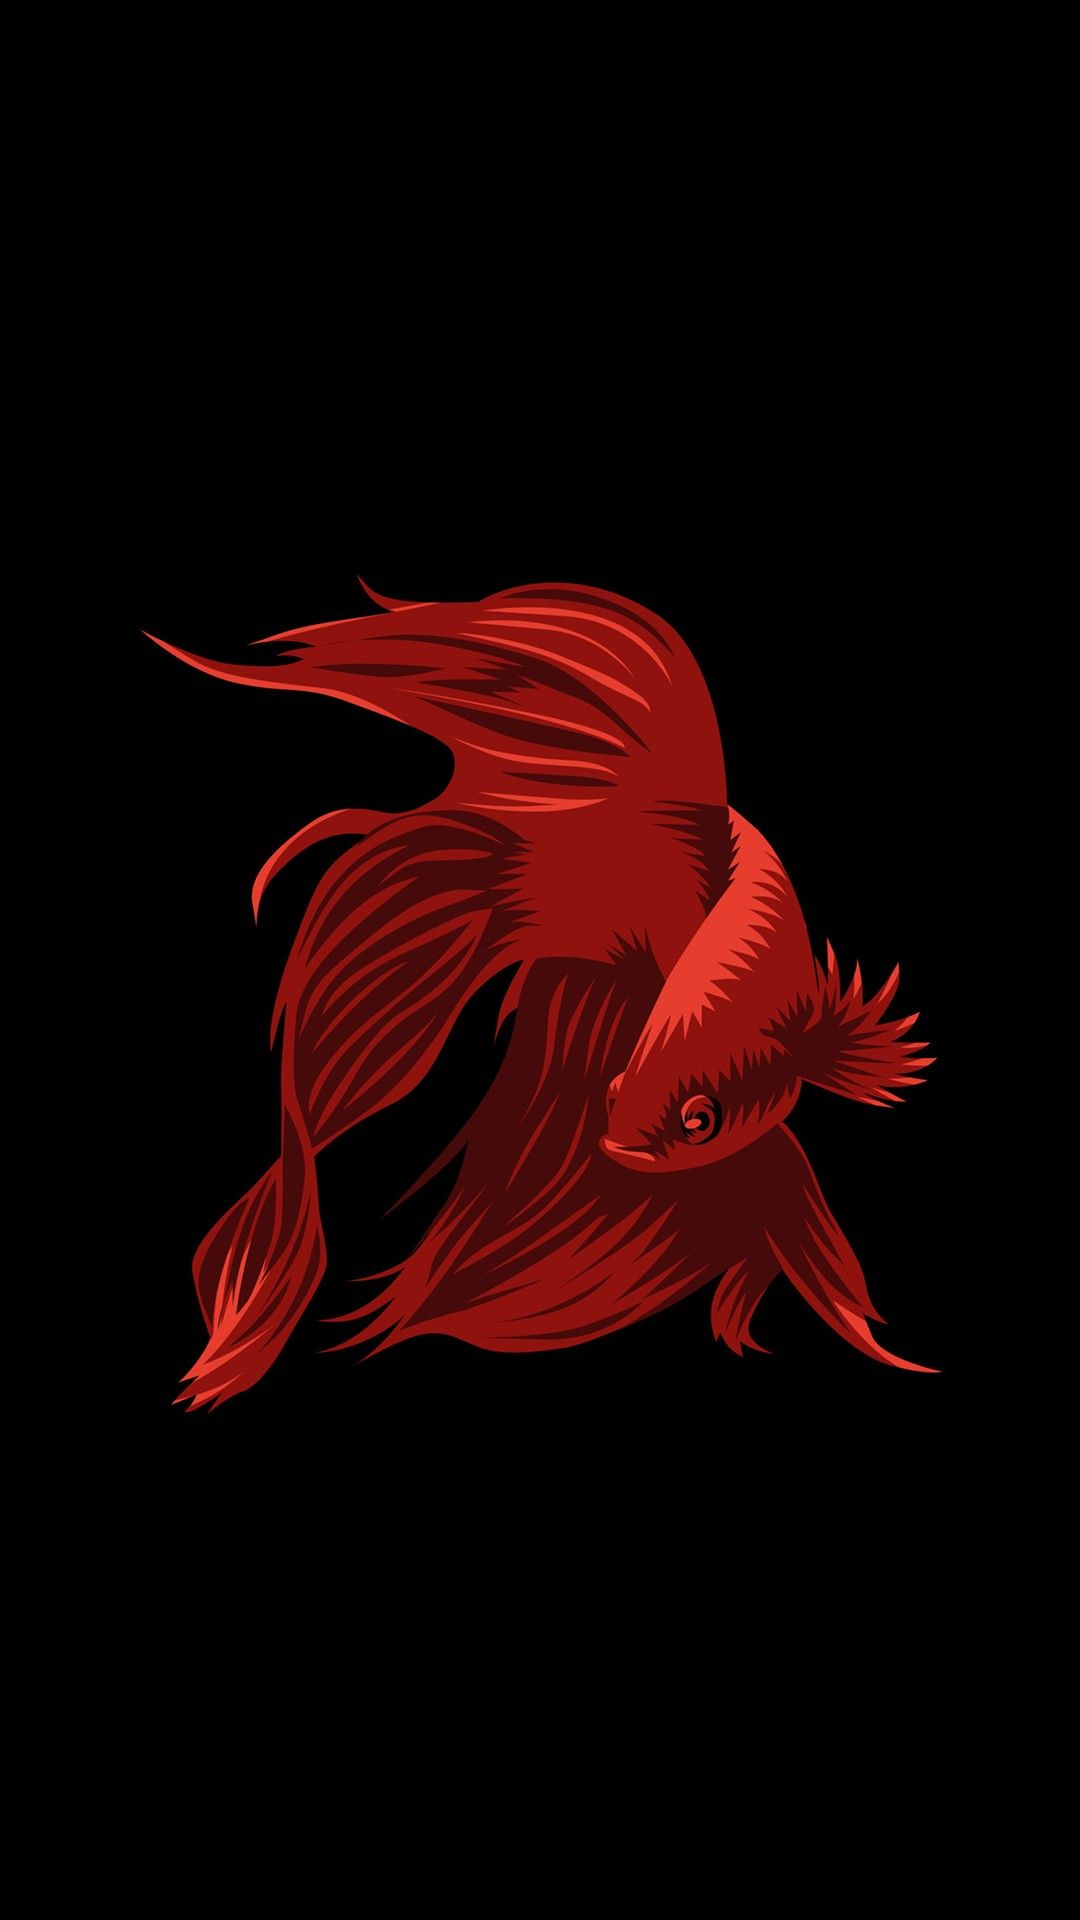 Black Background With Red Fish Profile Wallpaper Star Wars